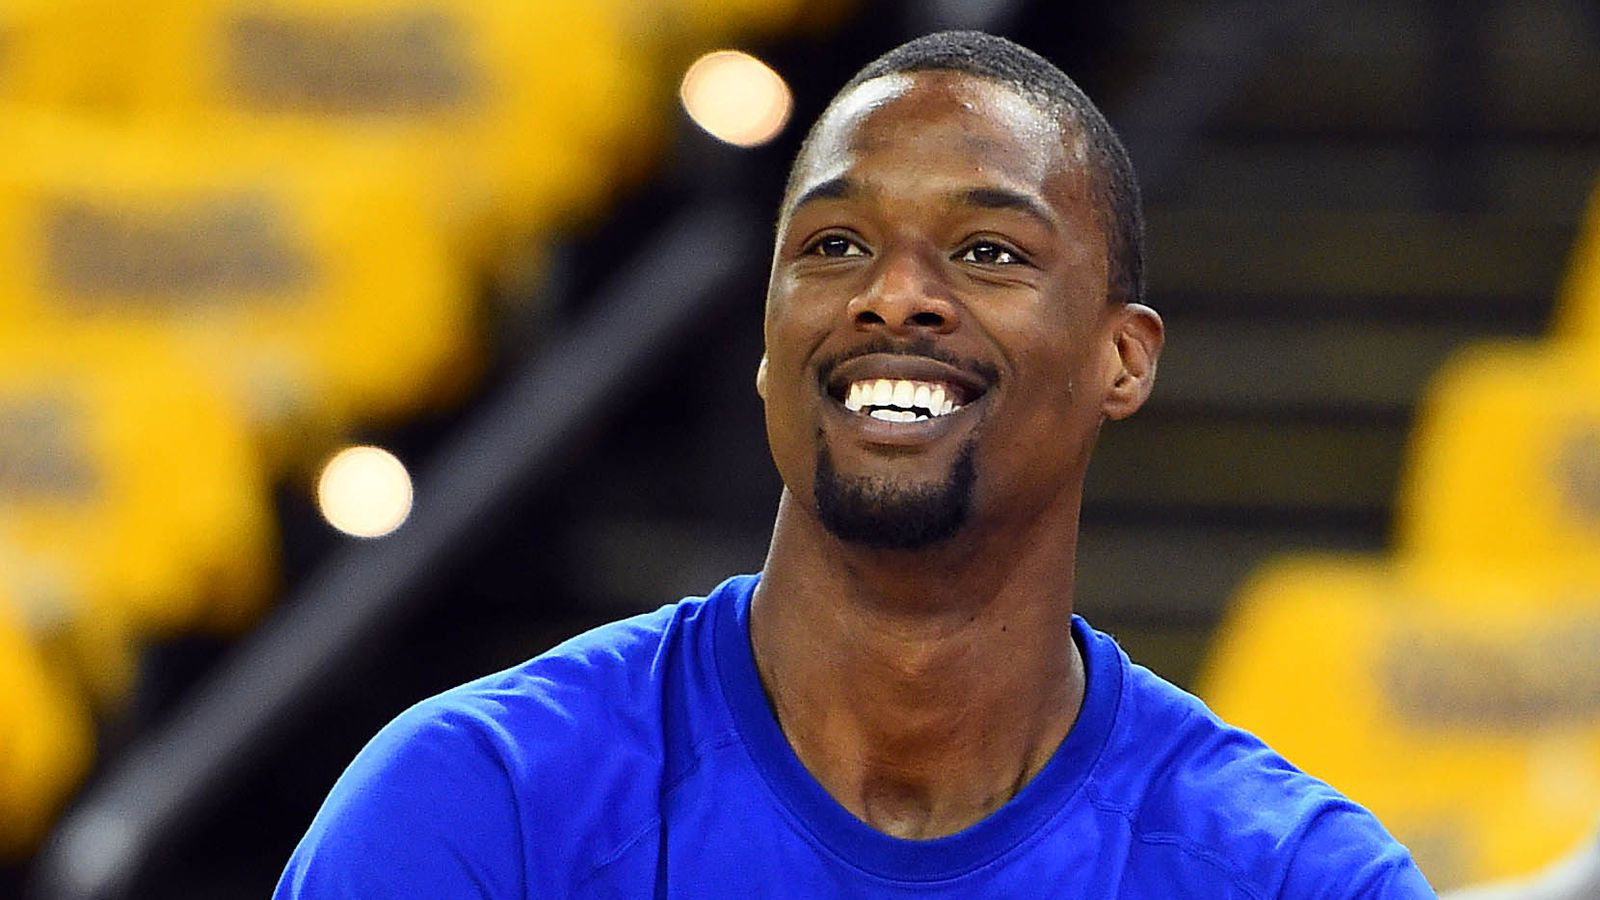 Harrison Barnes agrees to a 4-year, $94 million deal with the Mavericks, per report